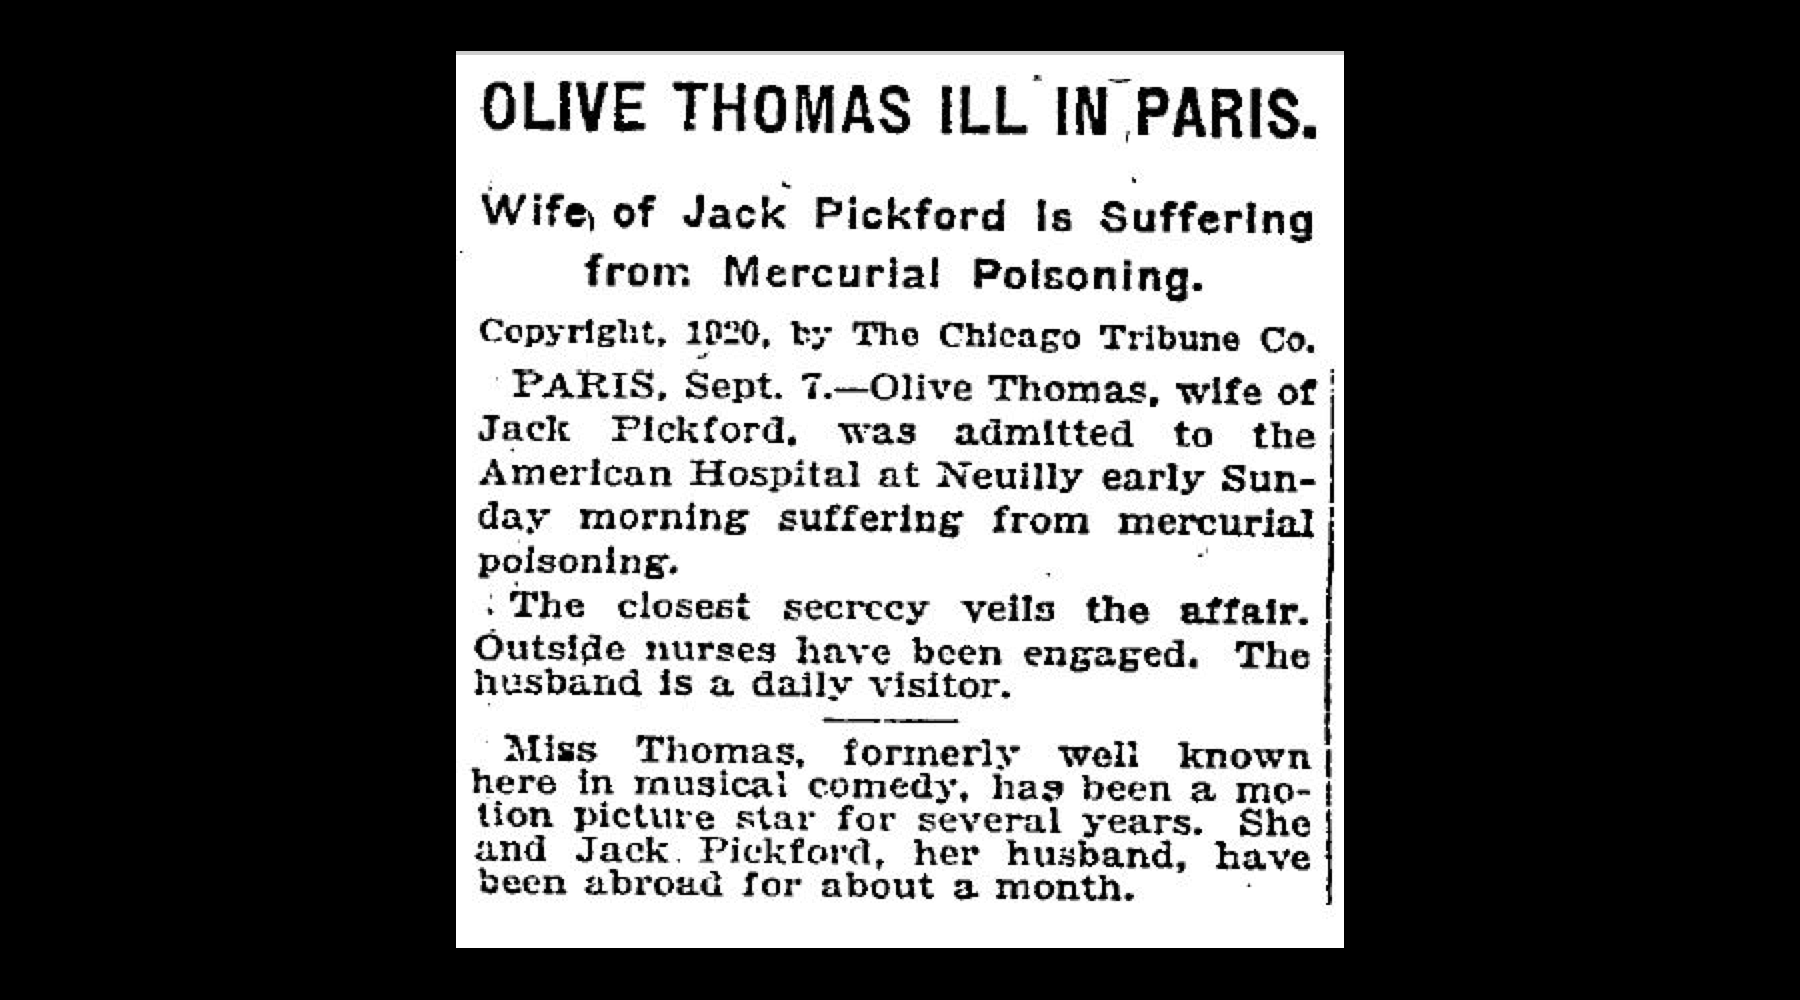 Olive drank poison around 3 a.m. at the Ritz Hotel that night. It's unclear if Jack was there at the time or if he was out.